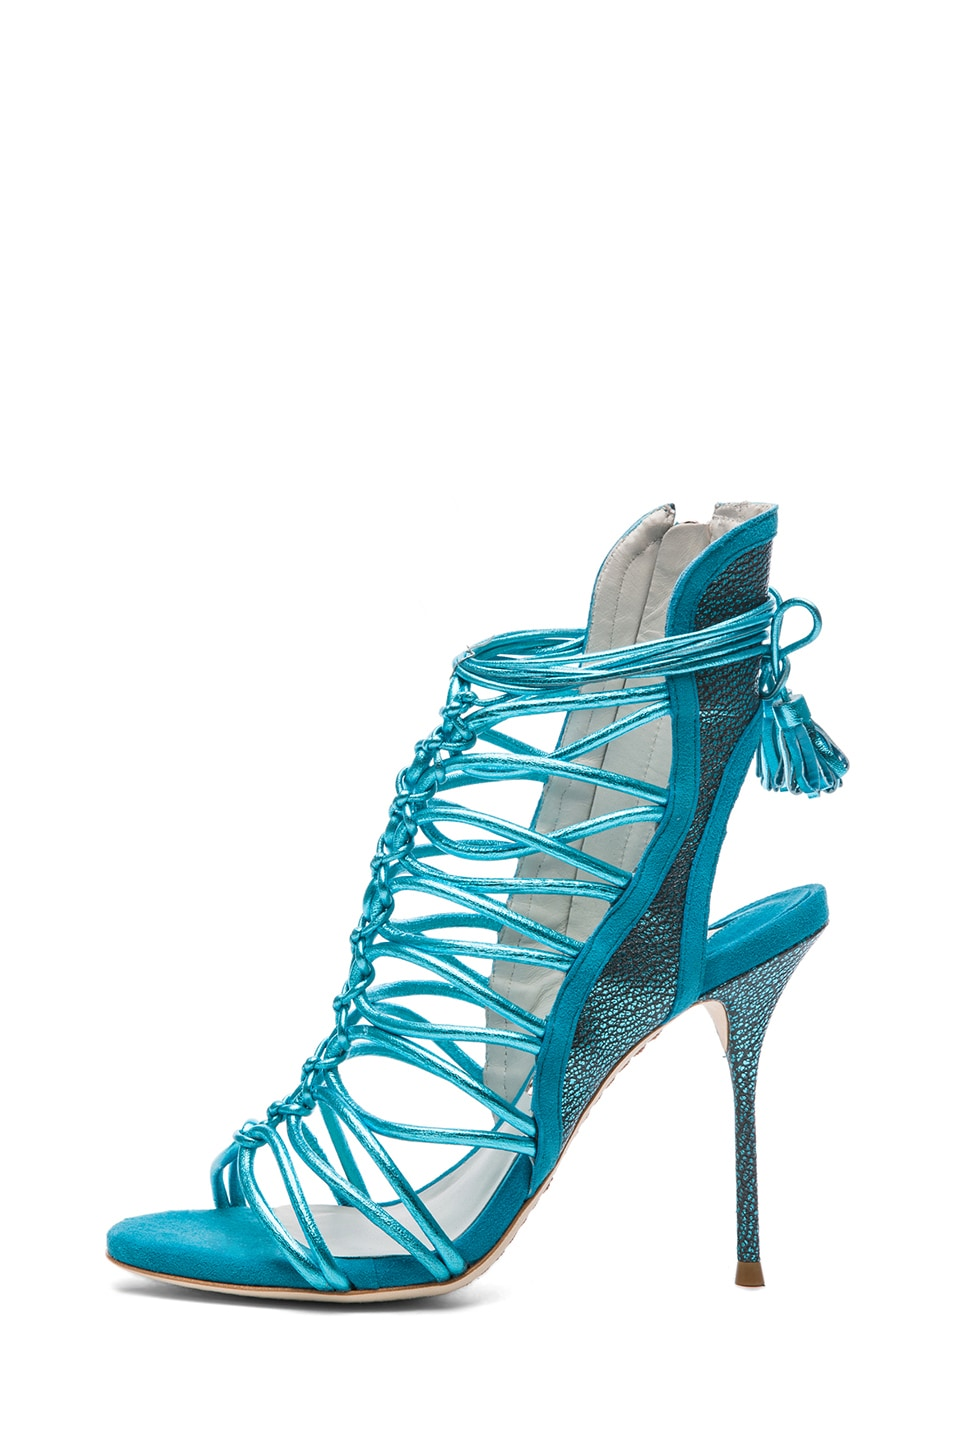 Image 1 of Sophia Webster Lacey Grain Metallic Leather Tie Up Heels in Turquoise